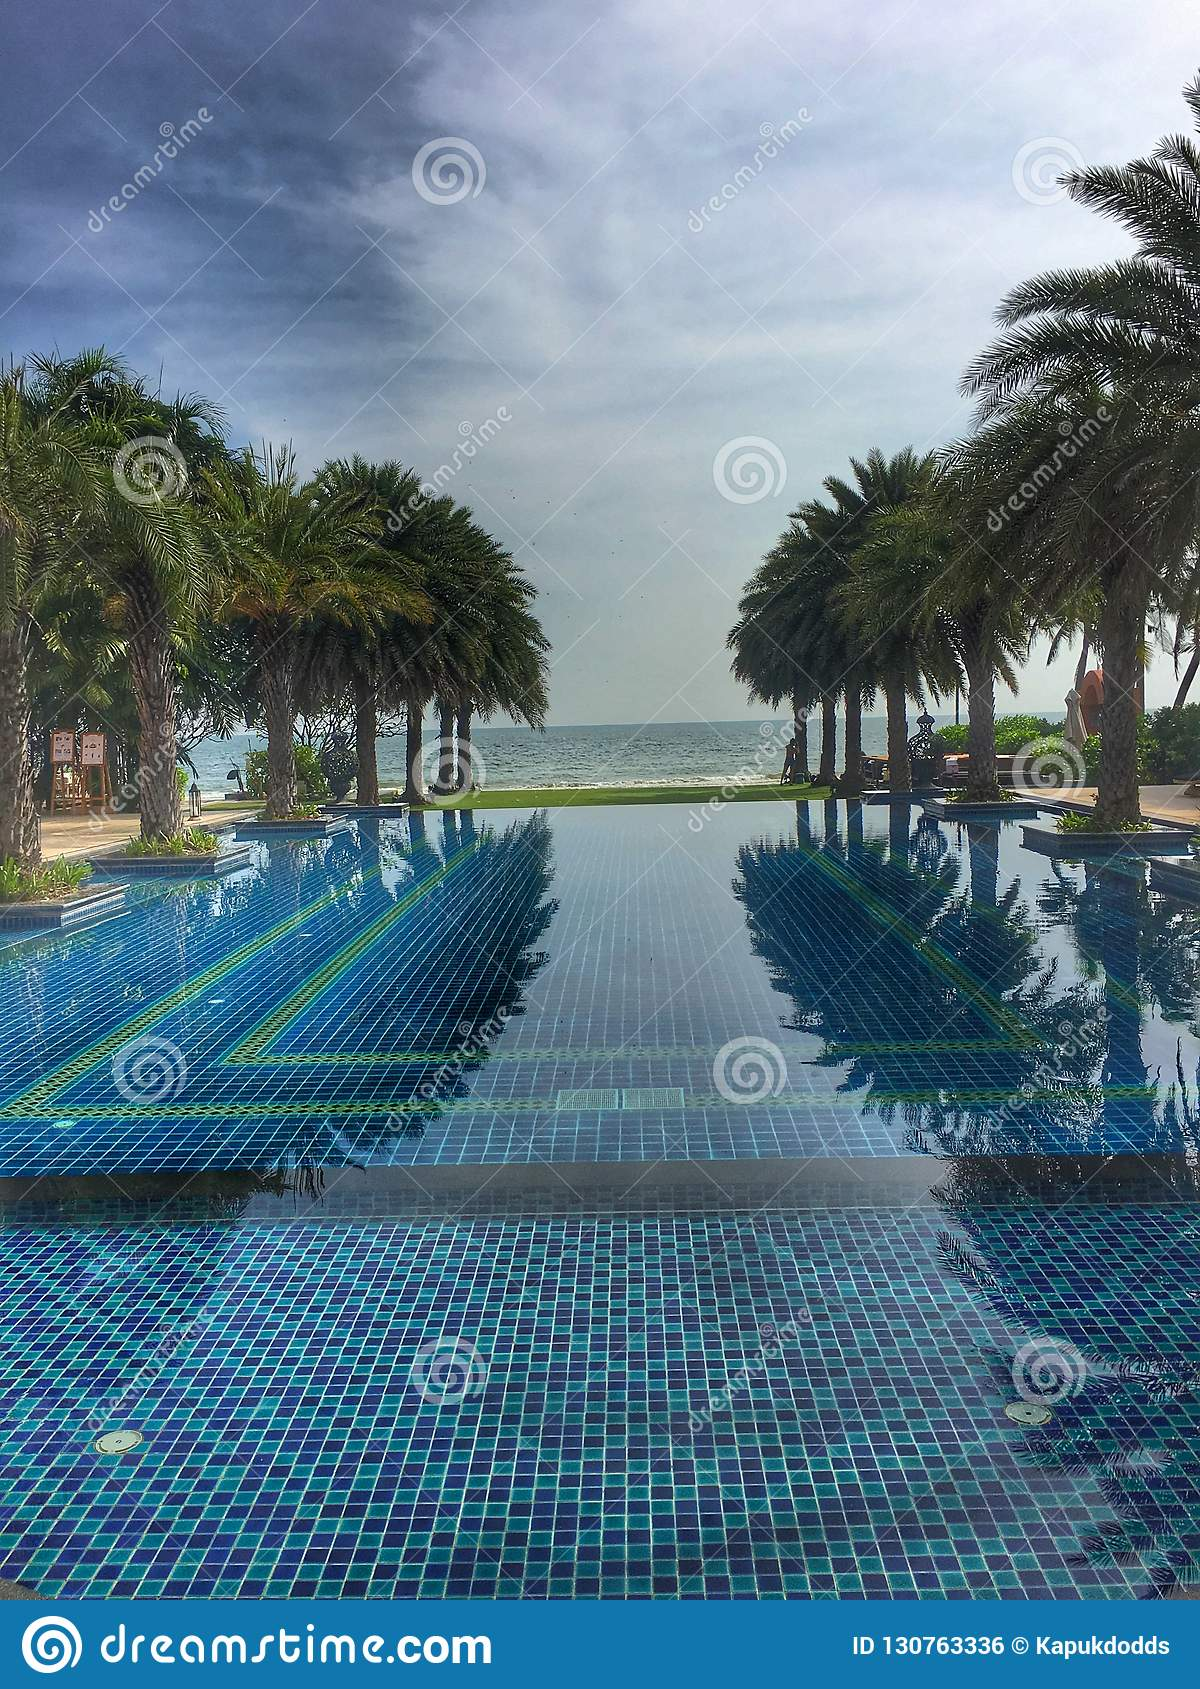 Endless Swimming Pool With Palm Trees Stock Photo - Image of ...